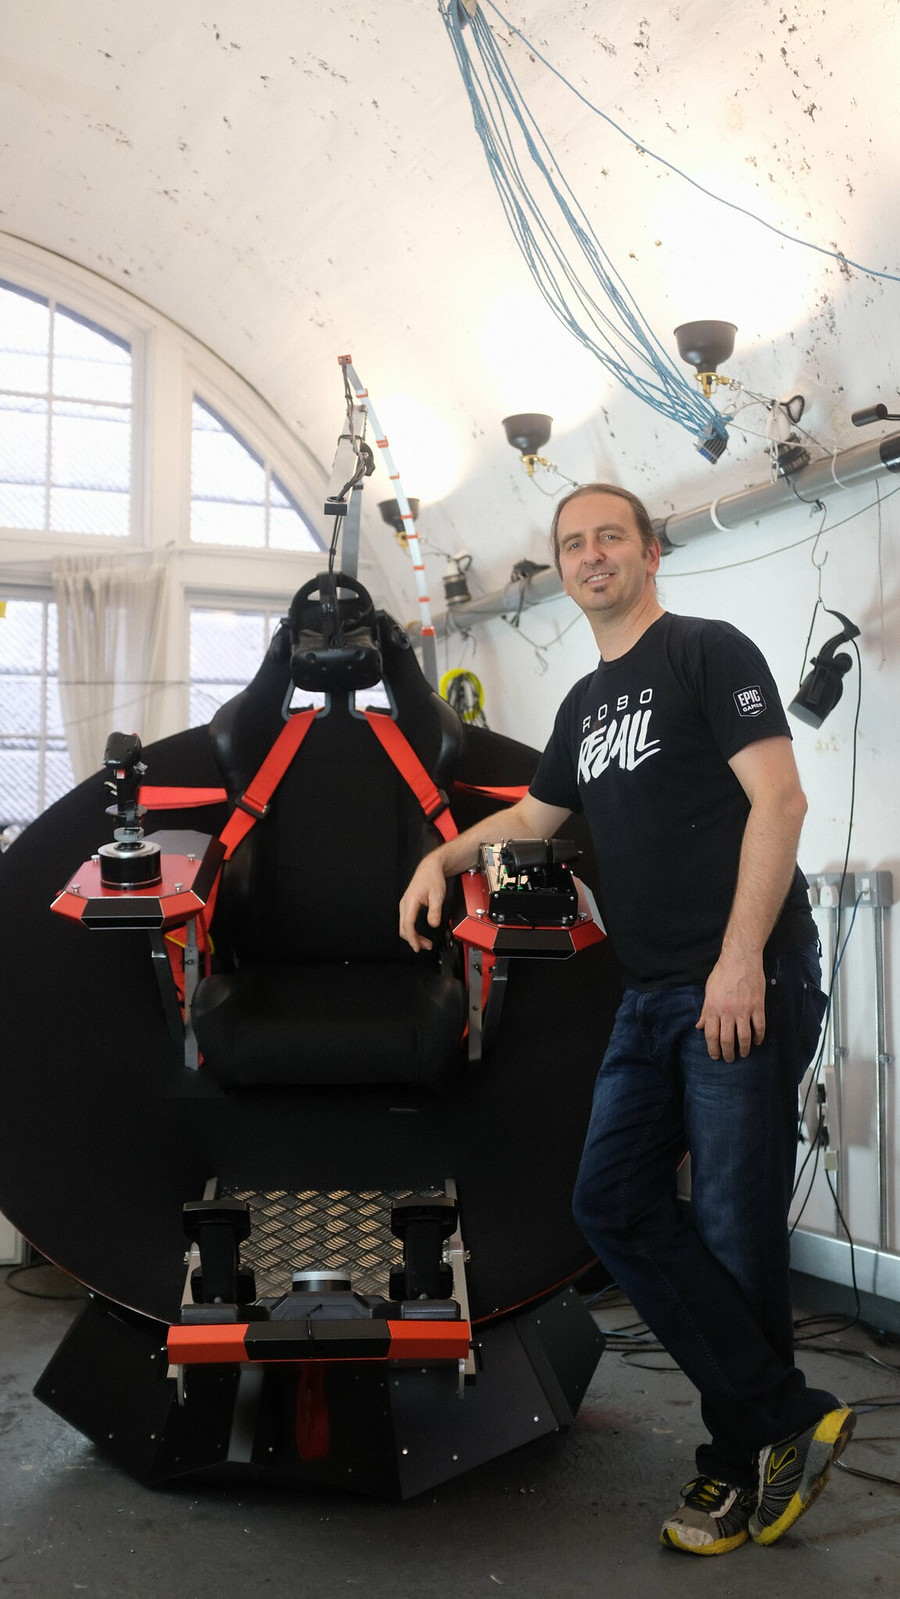 Feel Three founder, Mark Towner, with 3DOF motion simulator, London